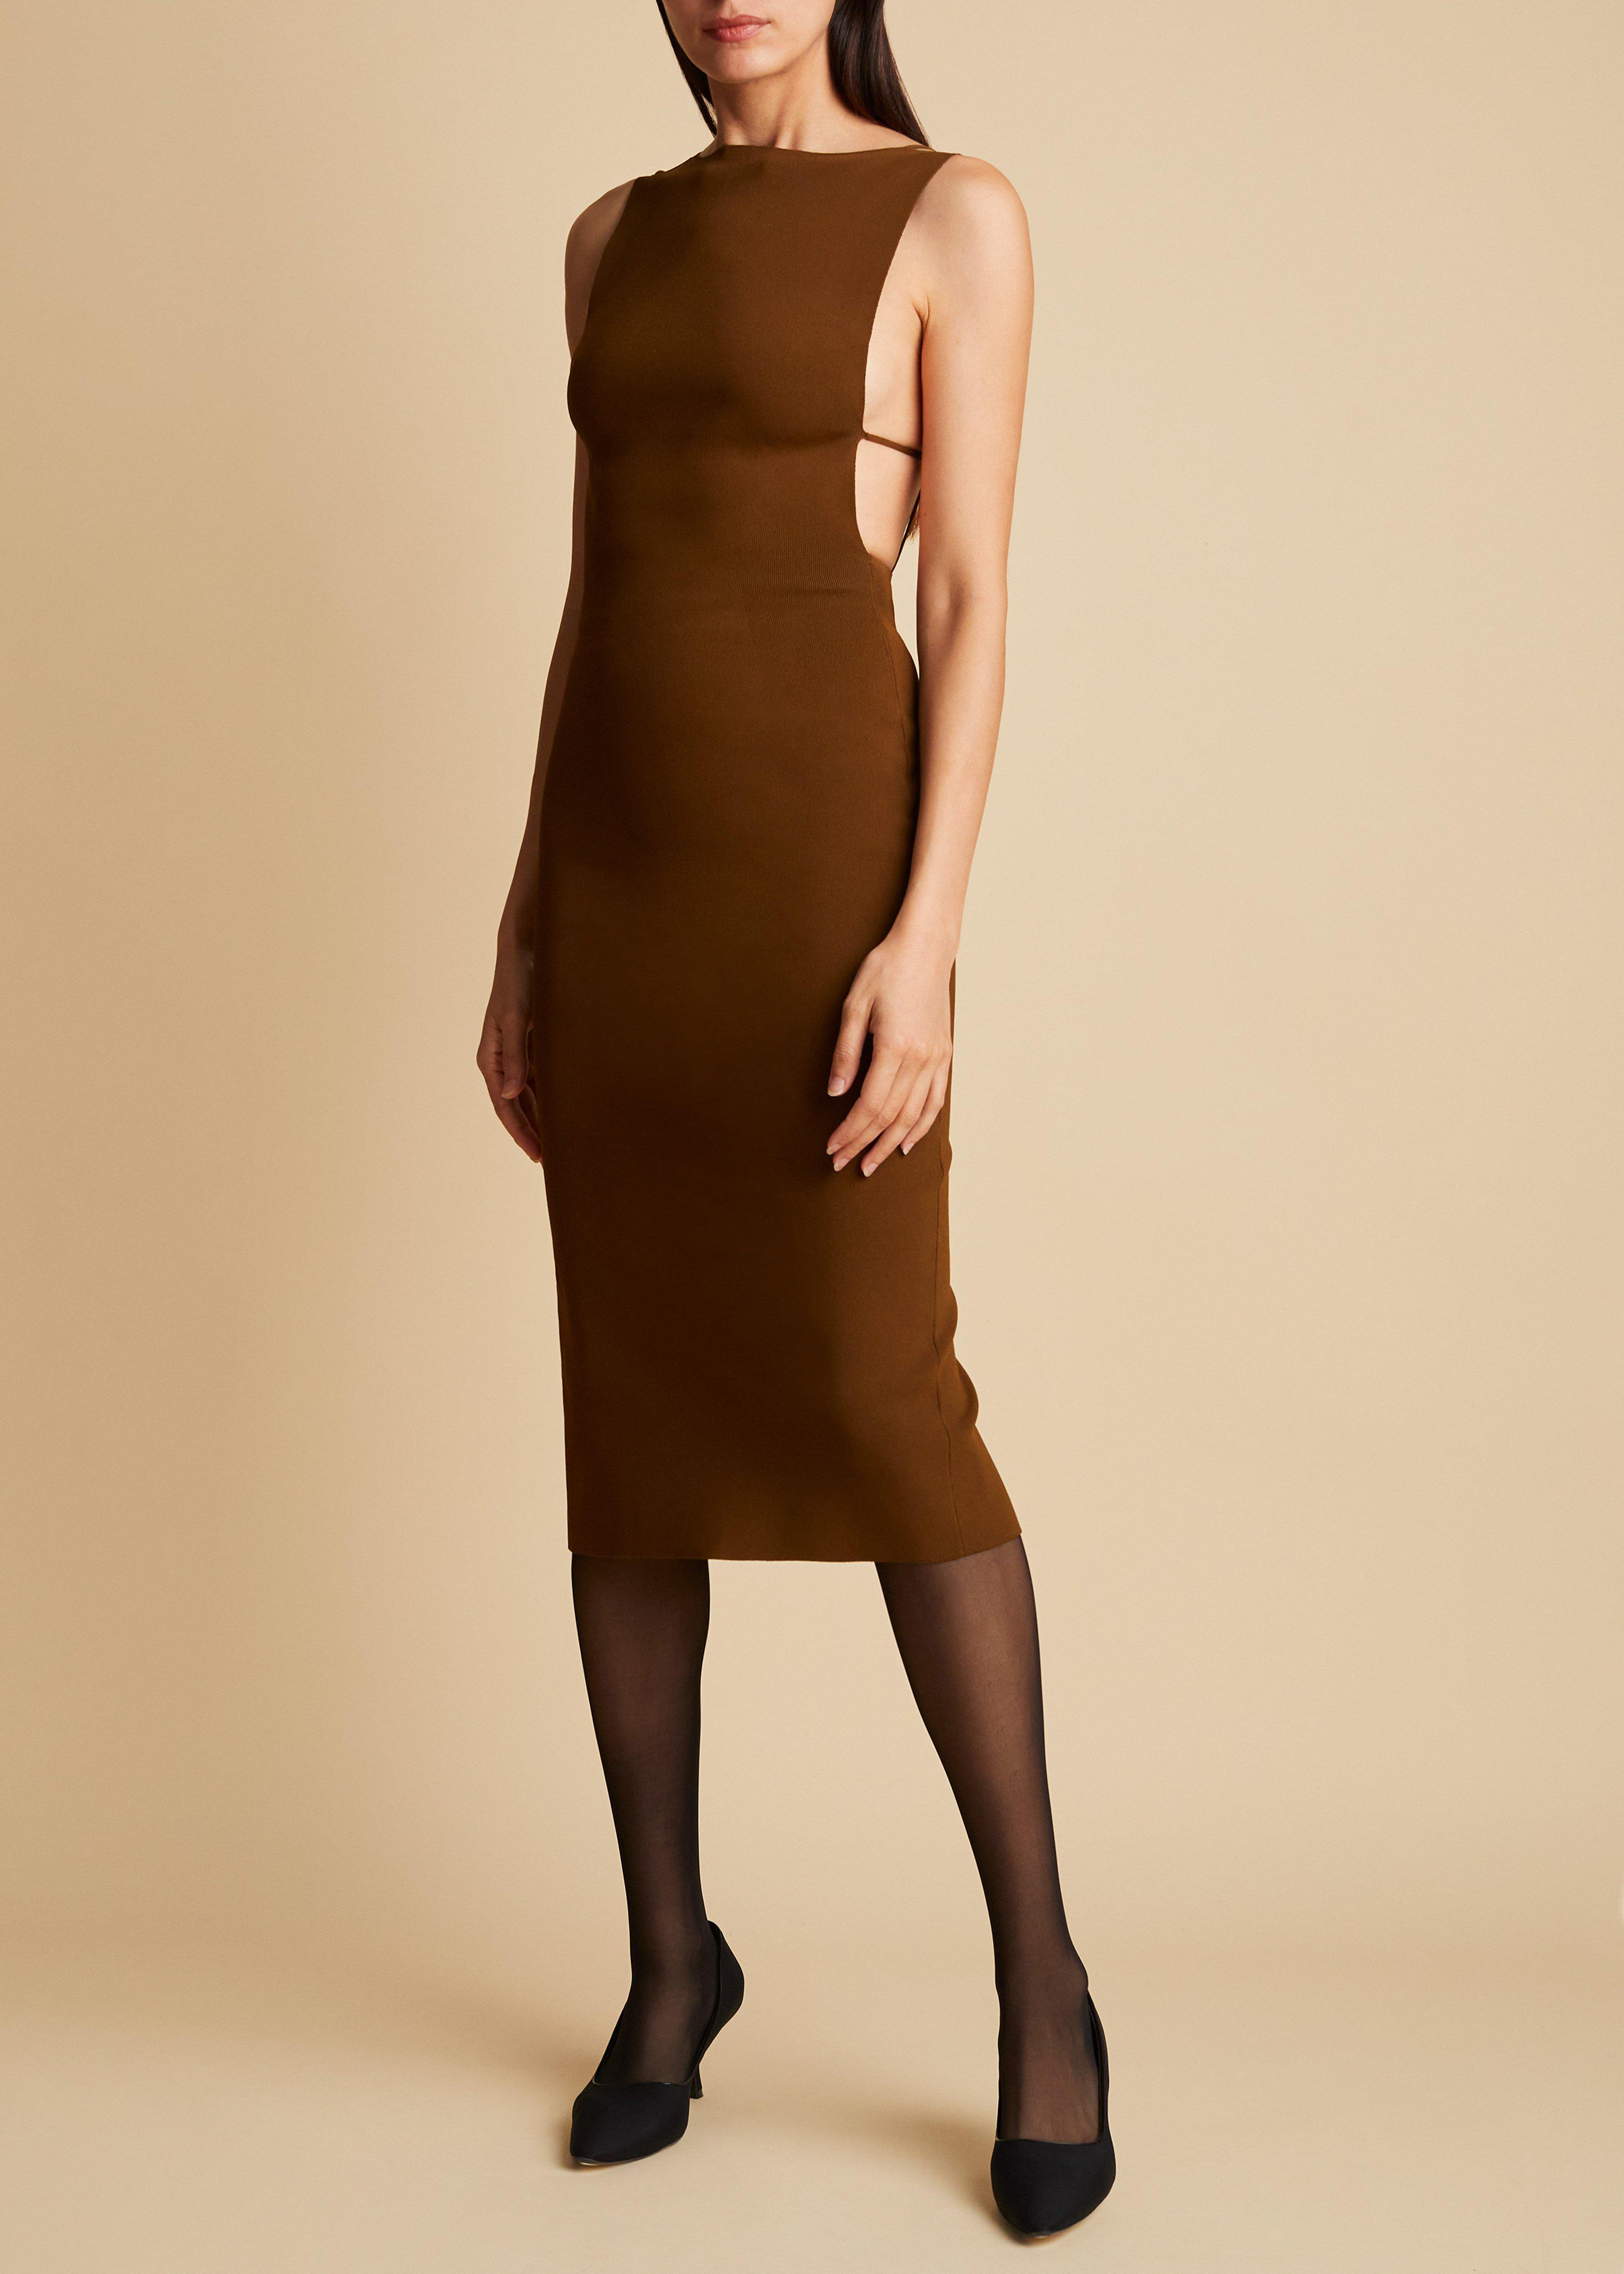 The Sofie Dress in Absinthe